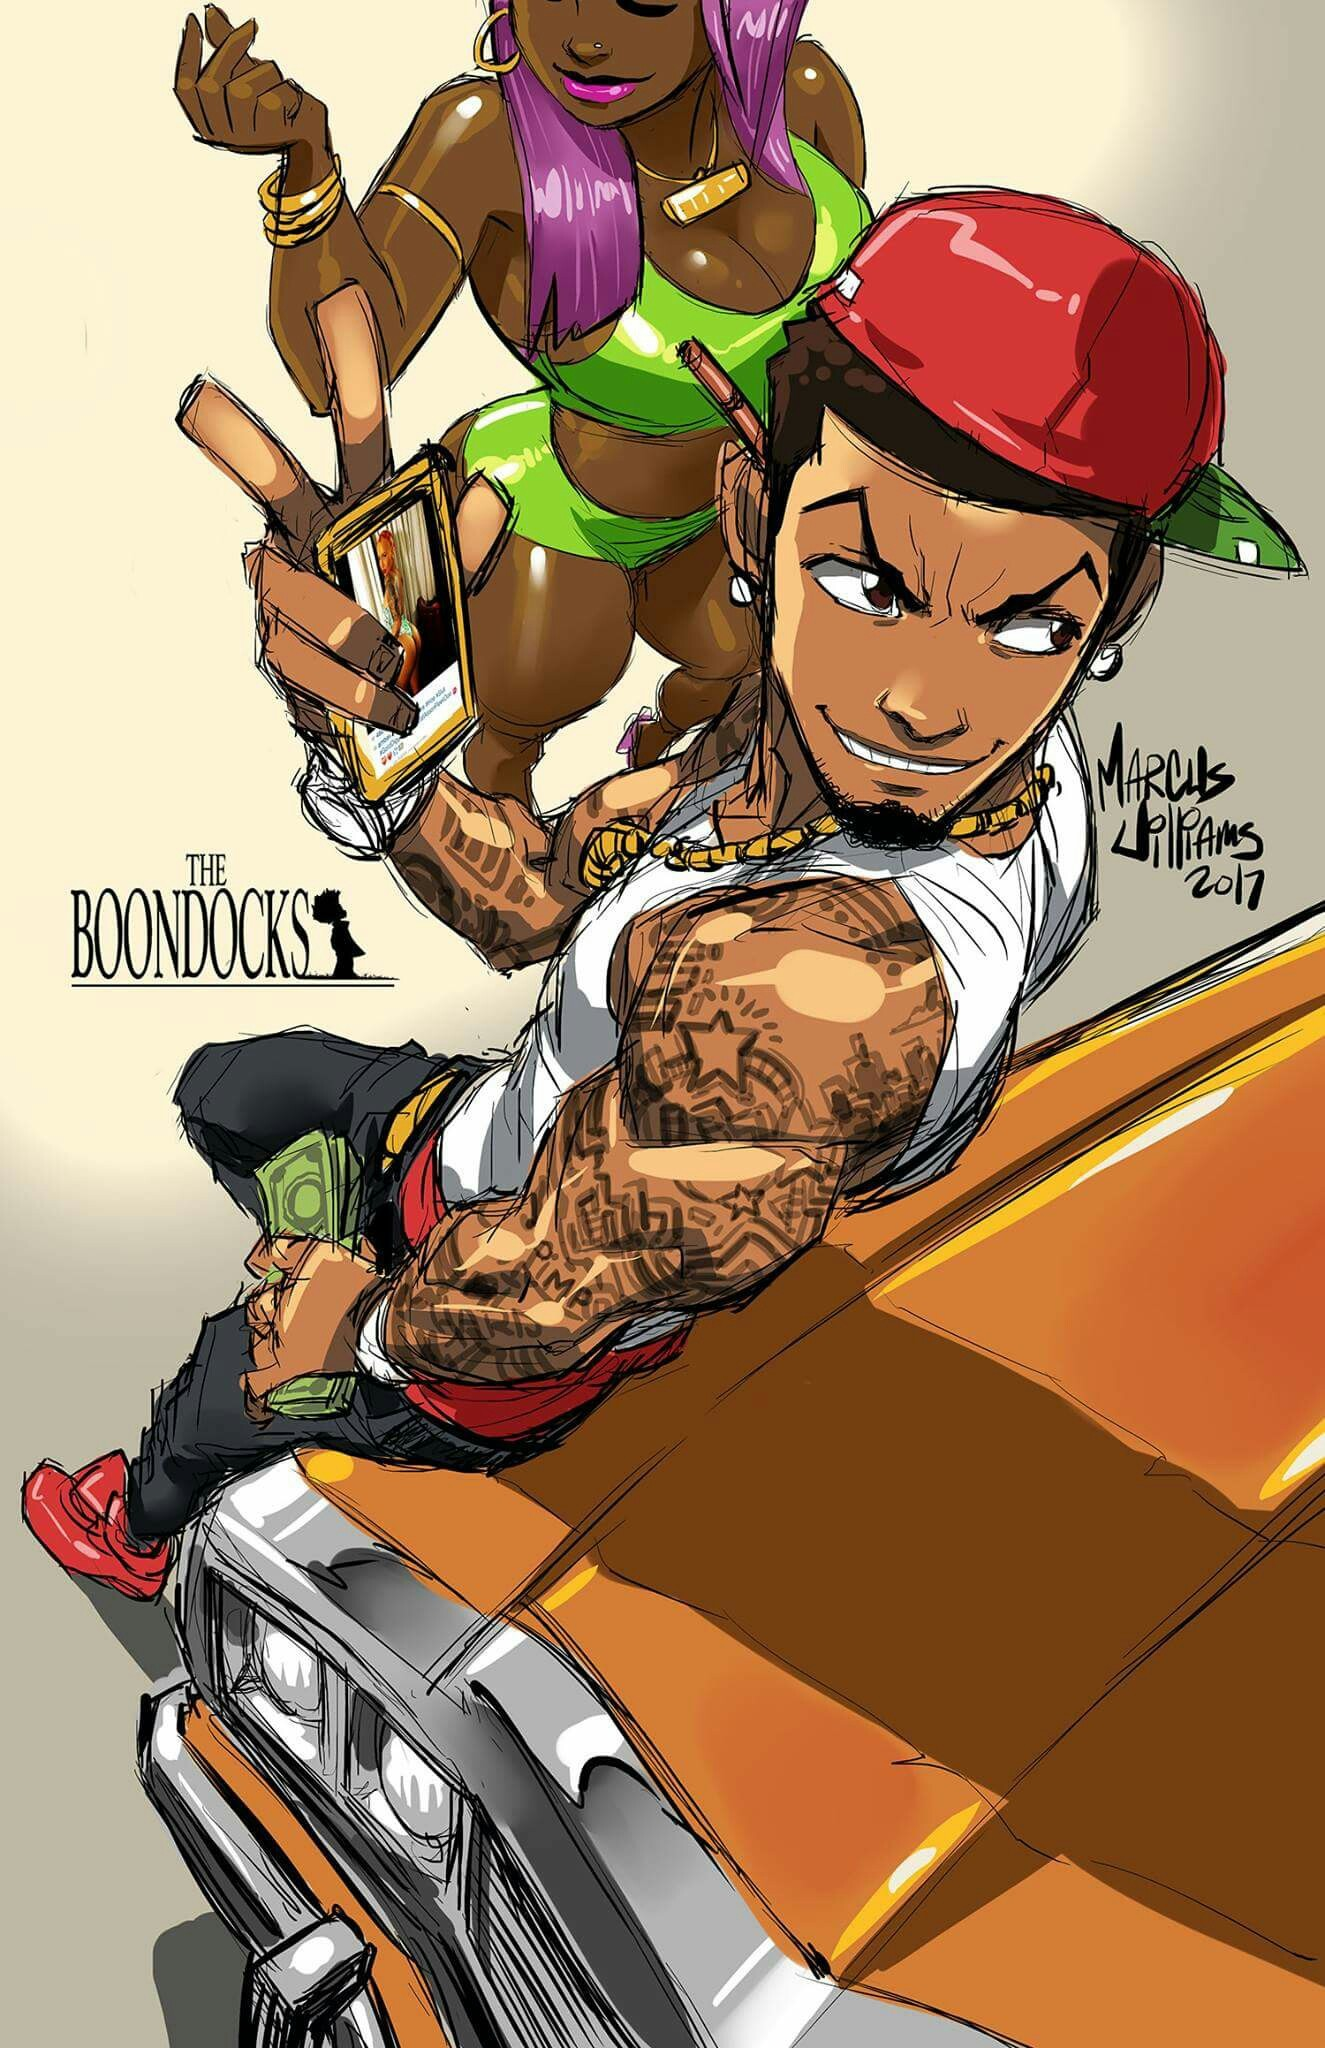 2137x1426 EarnSomeHeight 35 4 Boondocks Me By LadyDeadQuinn